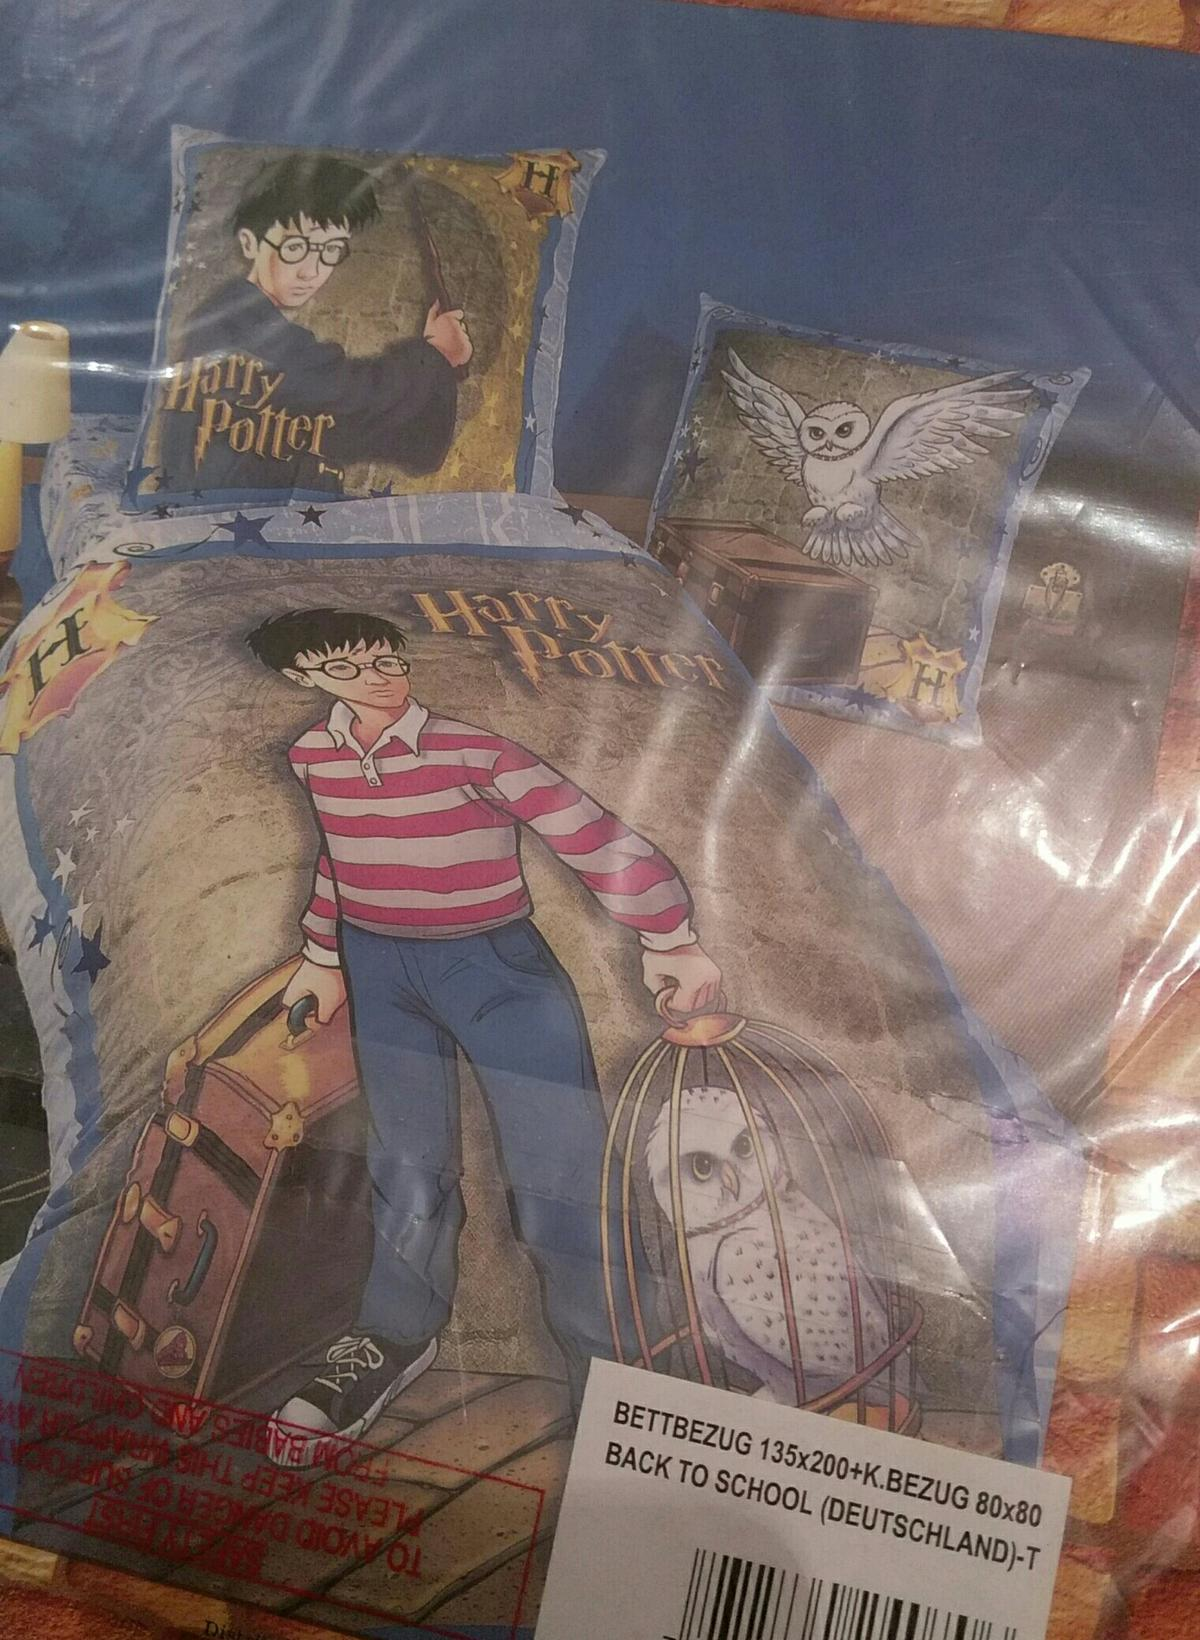 2er Set Harry Potter Bettwäsche Neu In 67715 Geiselberg For 3600